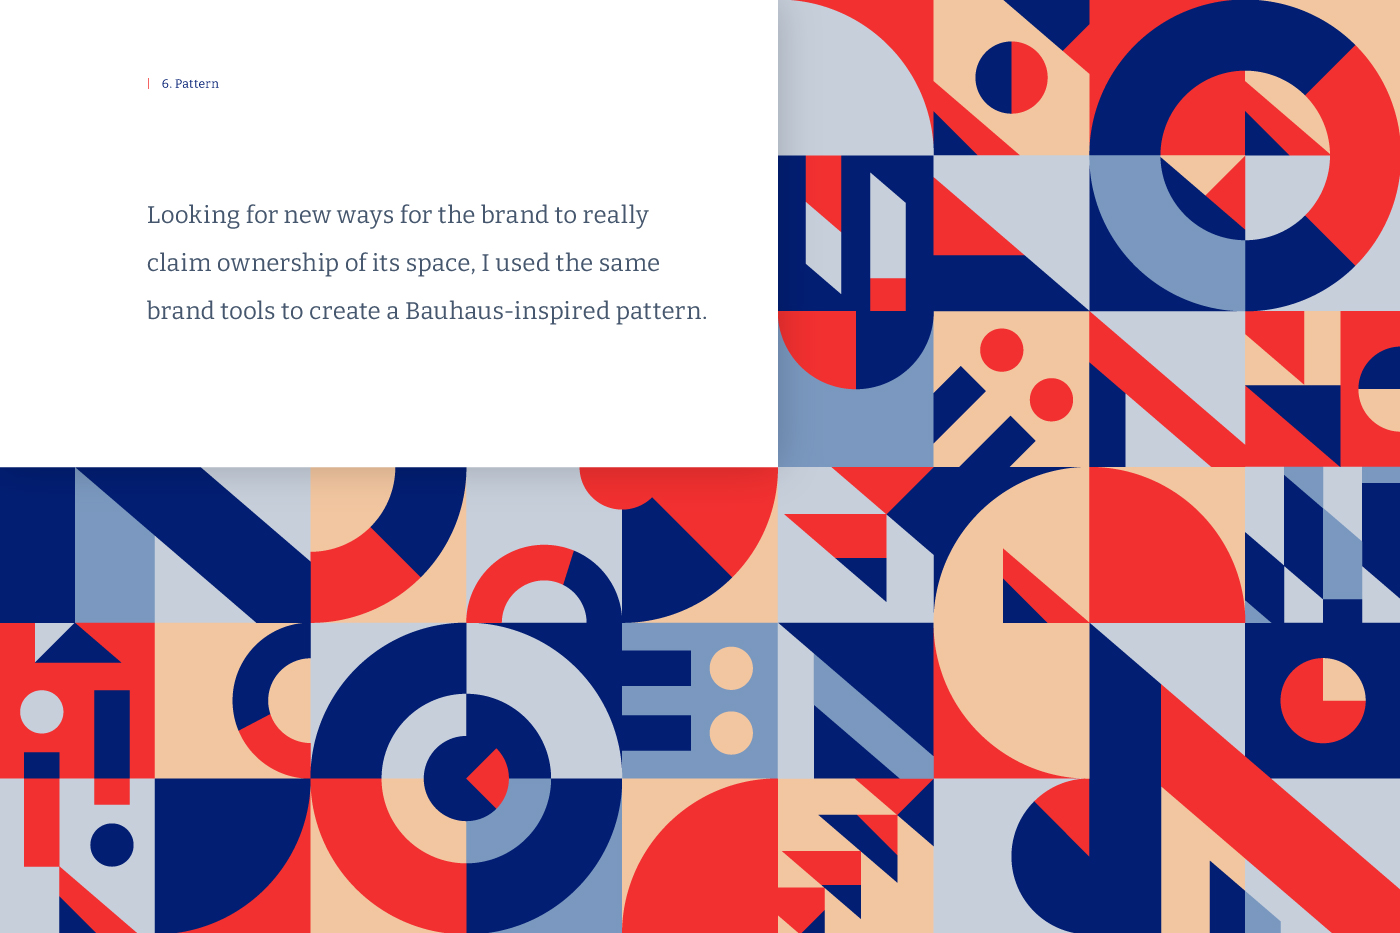 Introducing the CNI pattern design